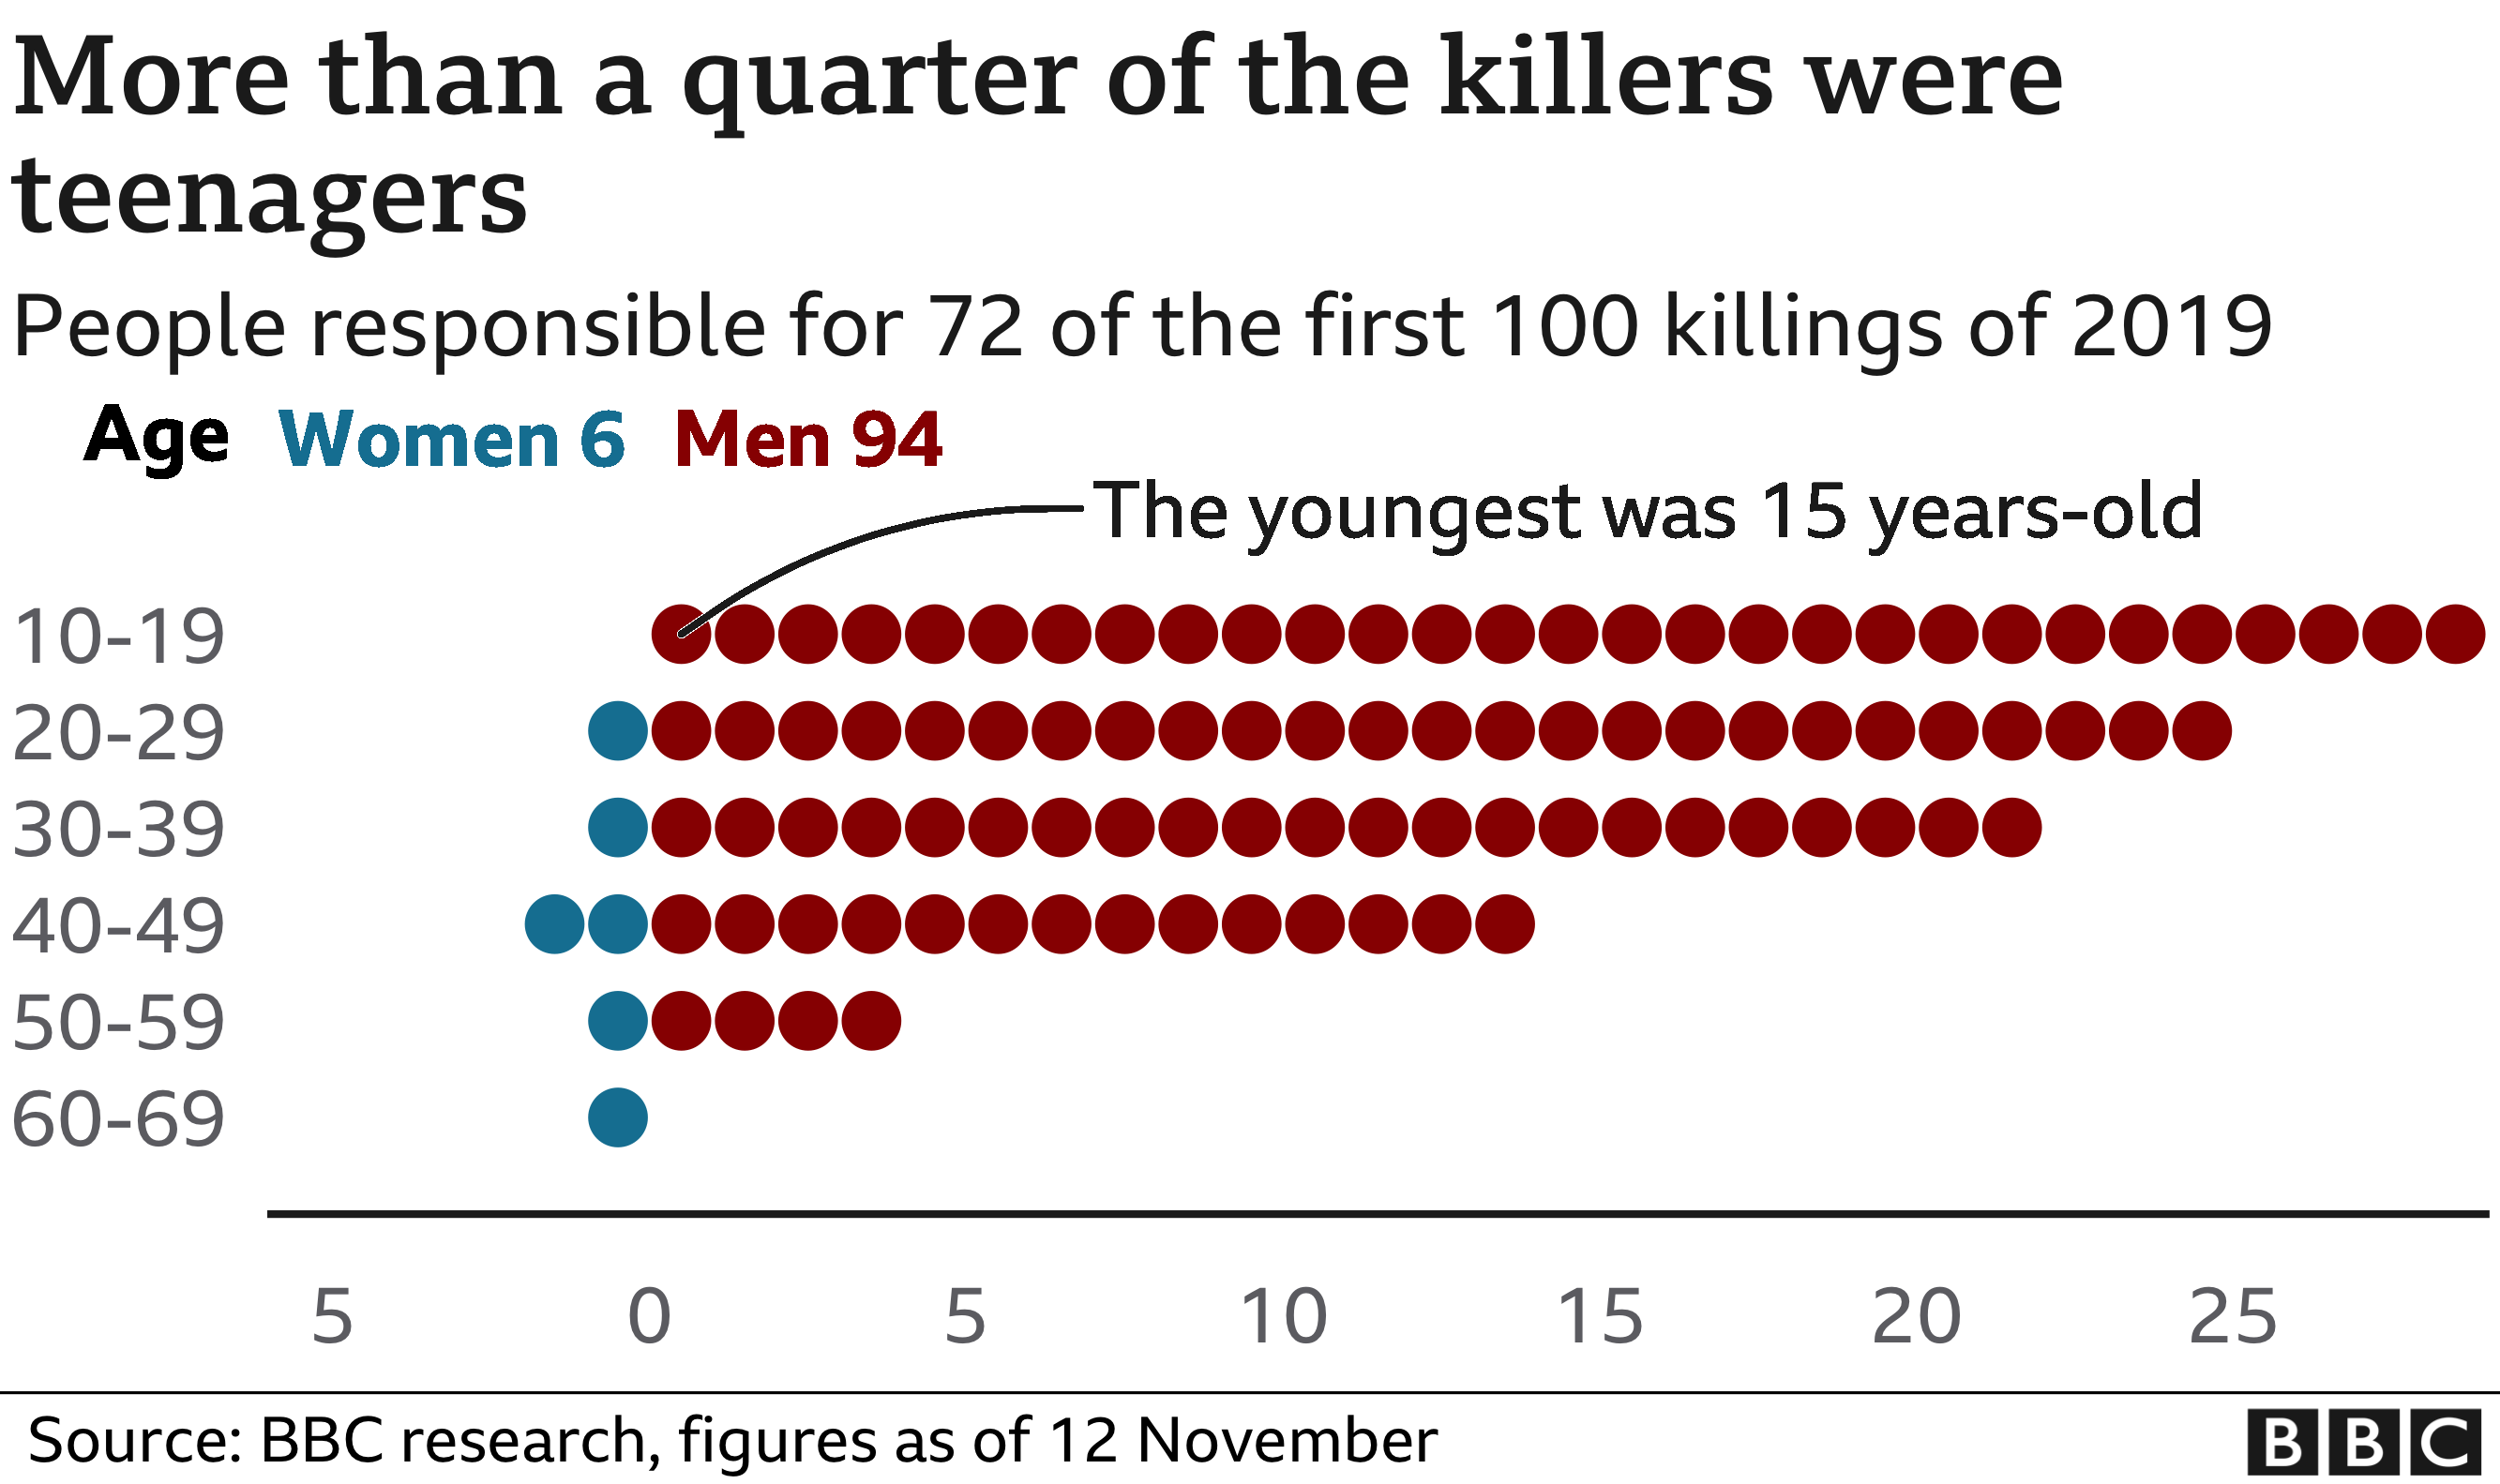 Chart showing that more than a quarter of the killers were teenagers. Updated 12 Nov